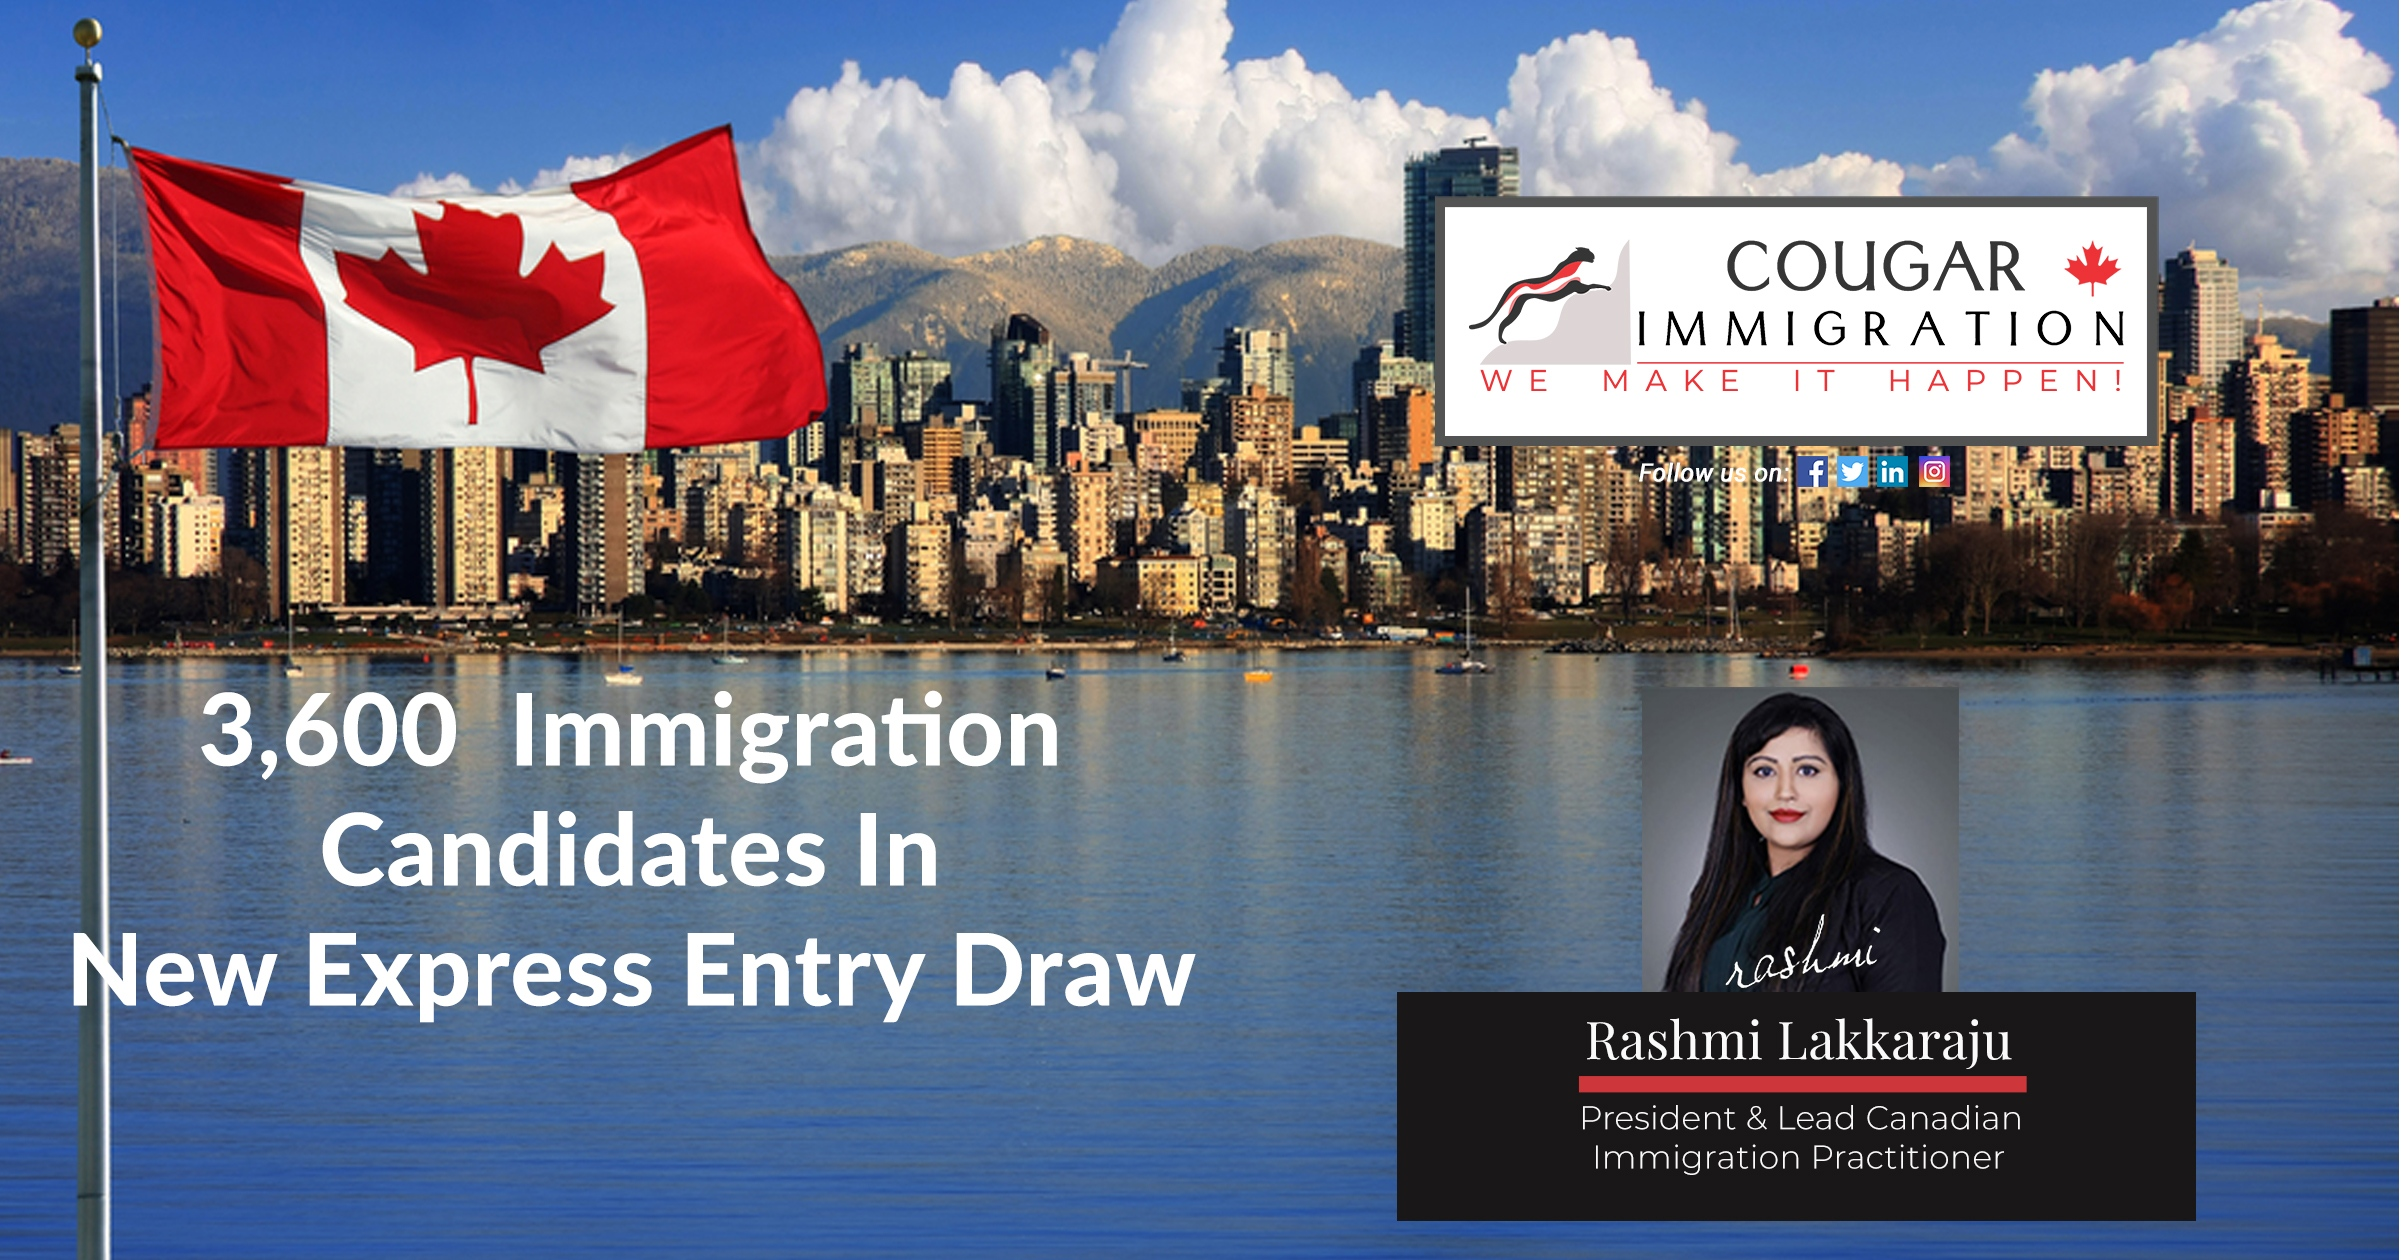 Canada Invitations 3,600 Immigration Candidates In Original Say Entry Blueprint thumbnail